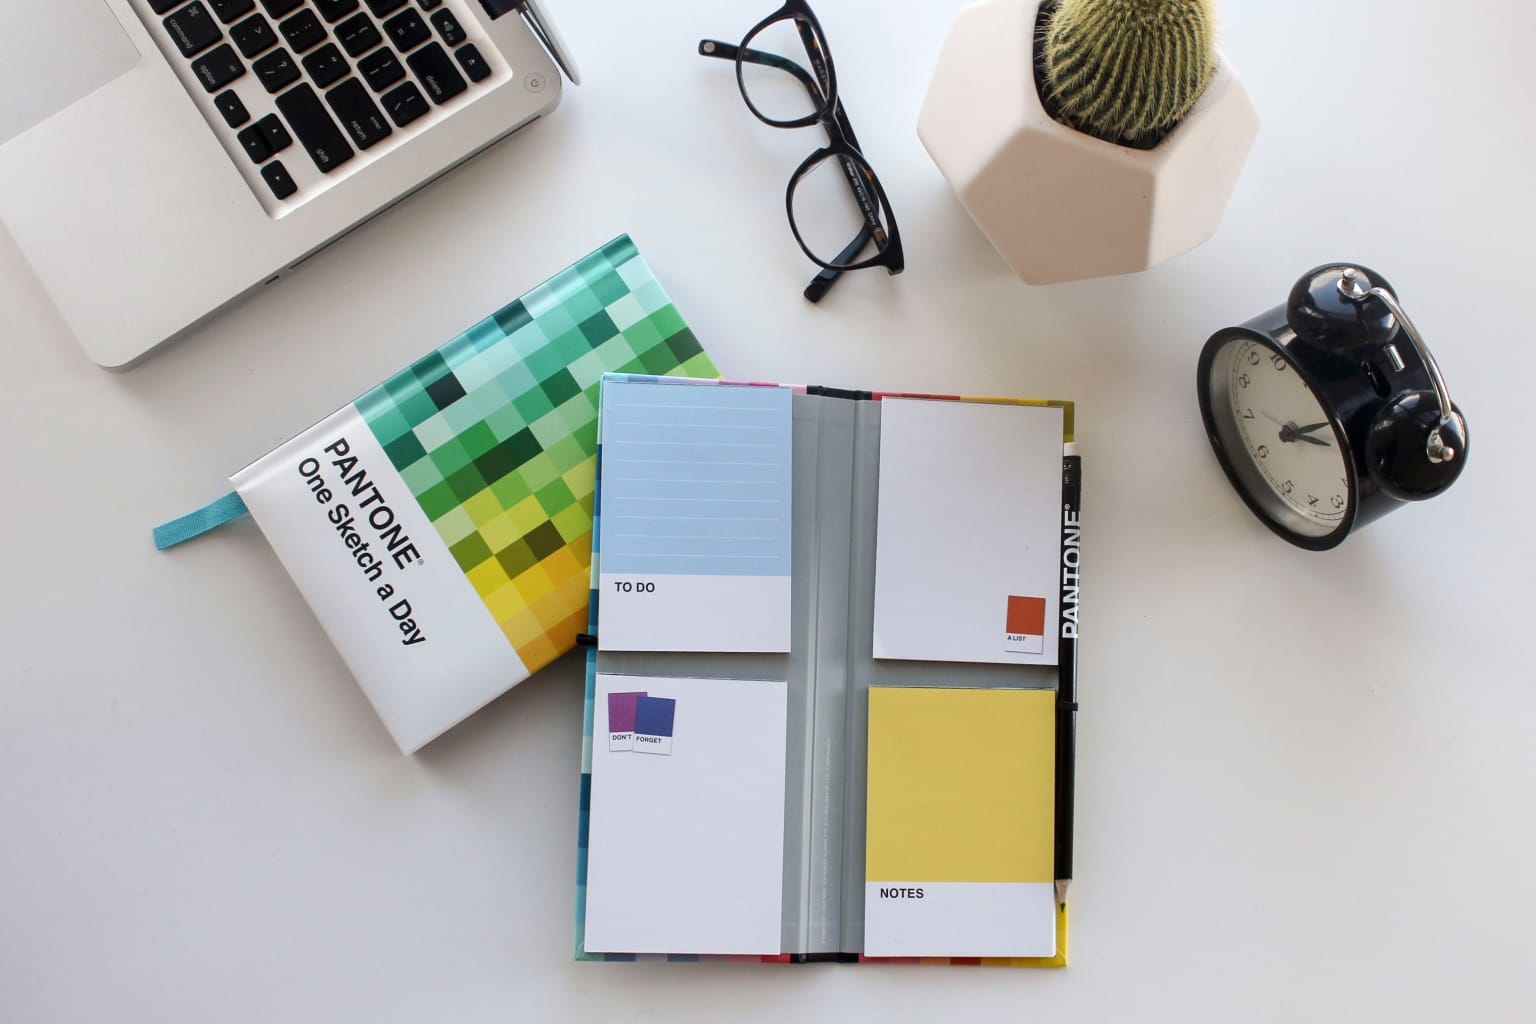 Pantone stationery products